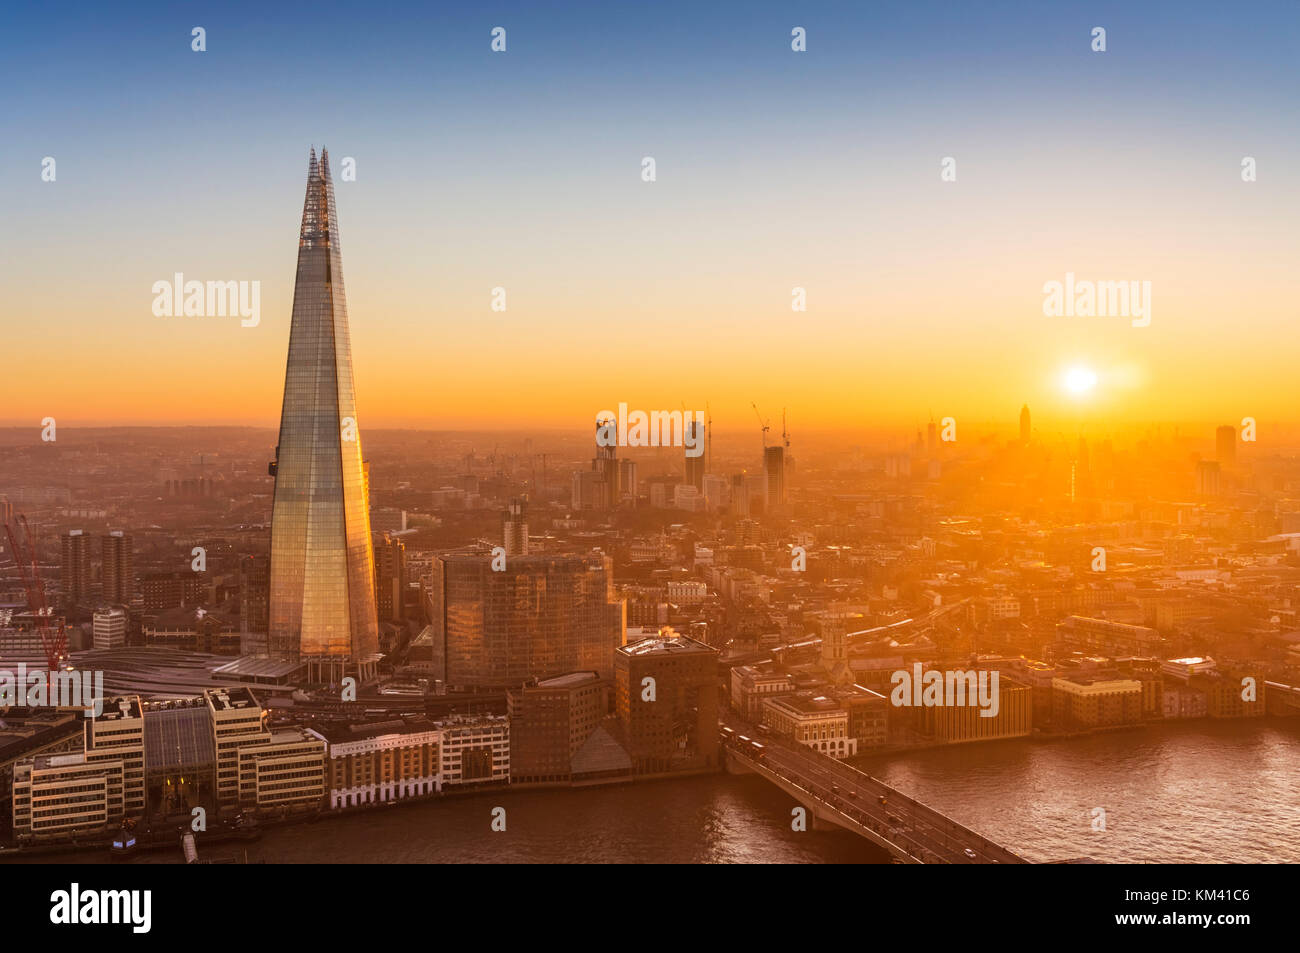 Le shard London Angleterre Londres Uk gb eu Europe le shard London London England uk gb eu Europe Photo Stock